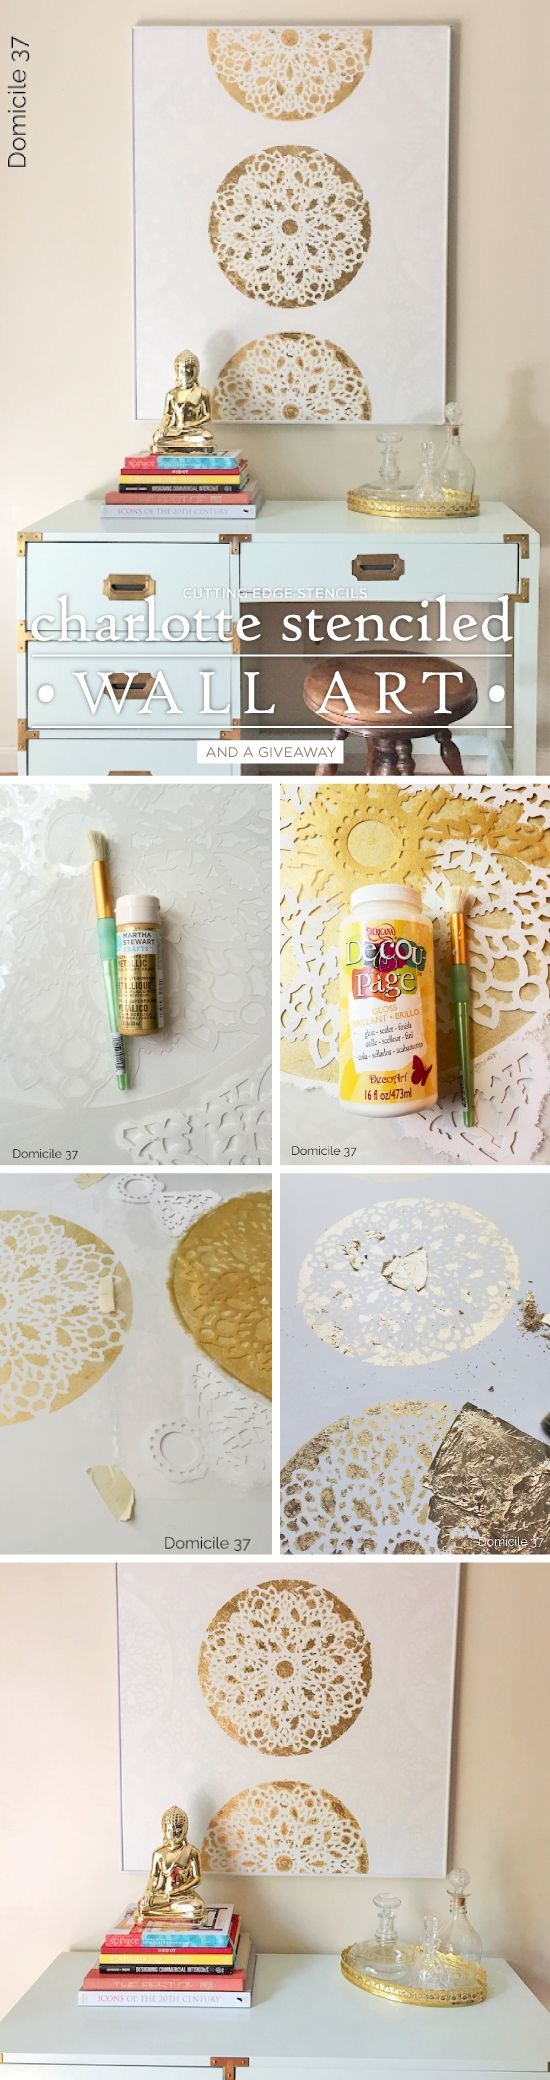 crushin art cutting edge stencil review and giveaway gold bedroomdiy bedroomstencil wall - Diy Wall Decor Ideas For Bedroom